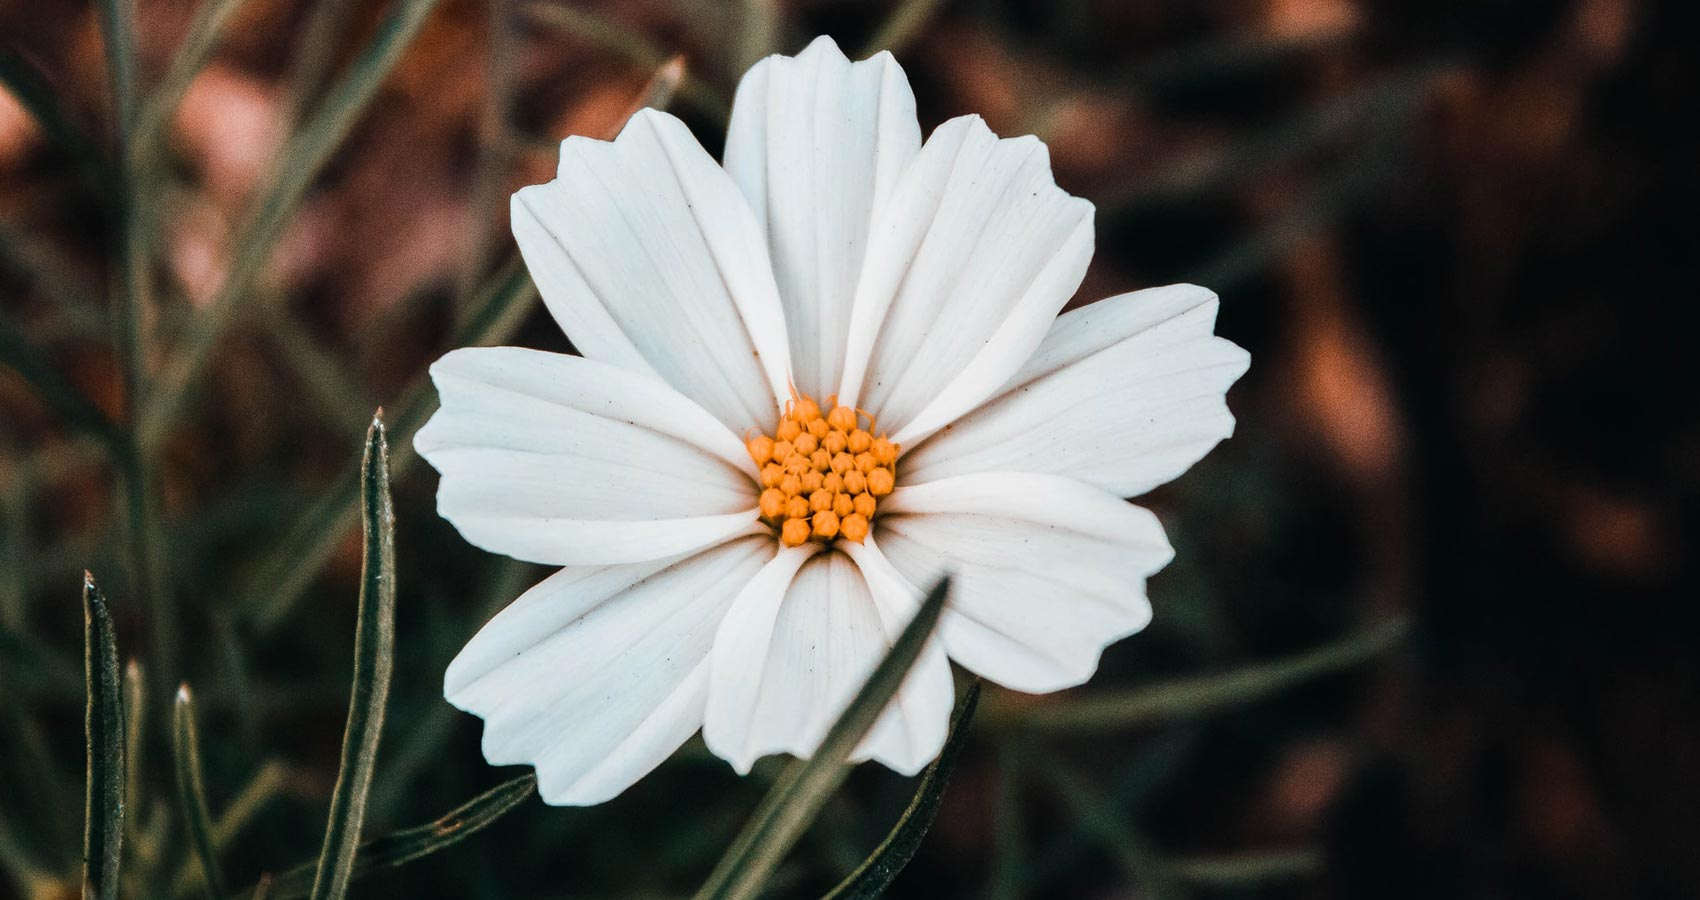 Wildflower, poetry written by Huda Tariq at Spillwords.com